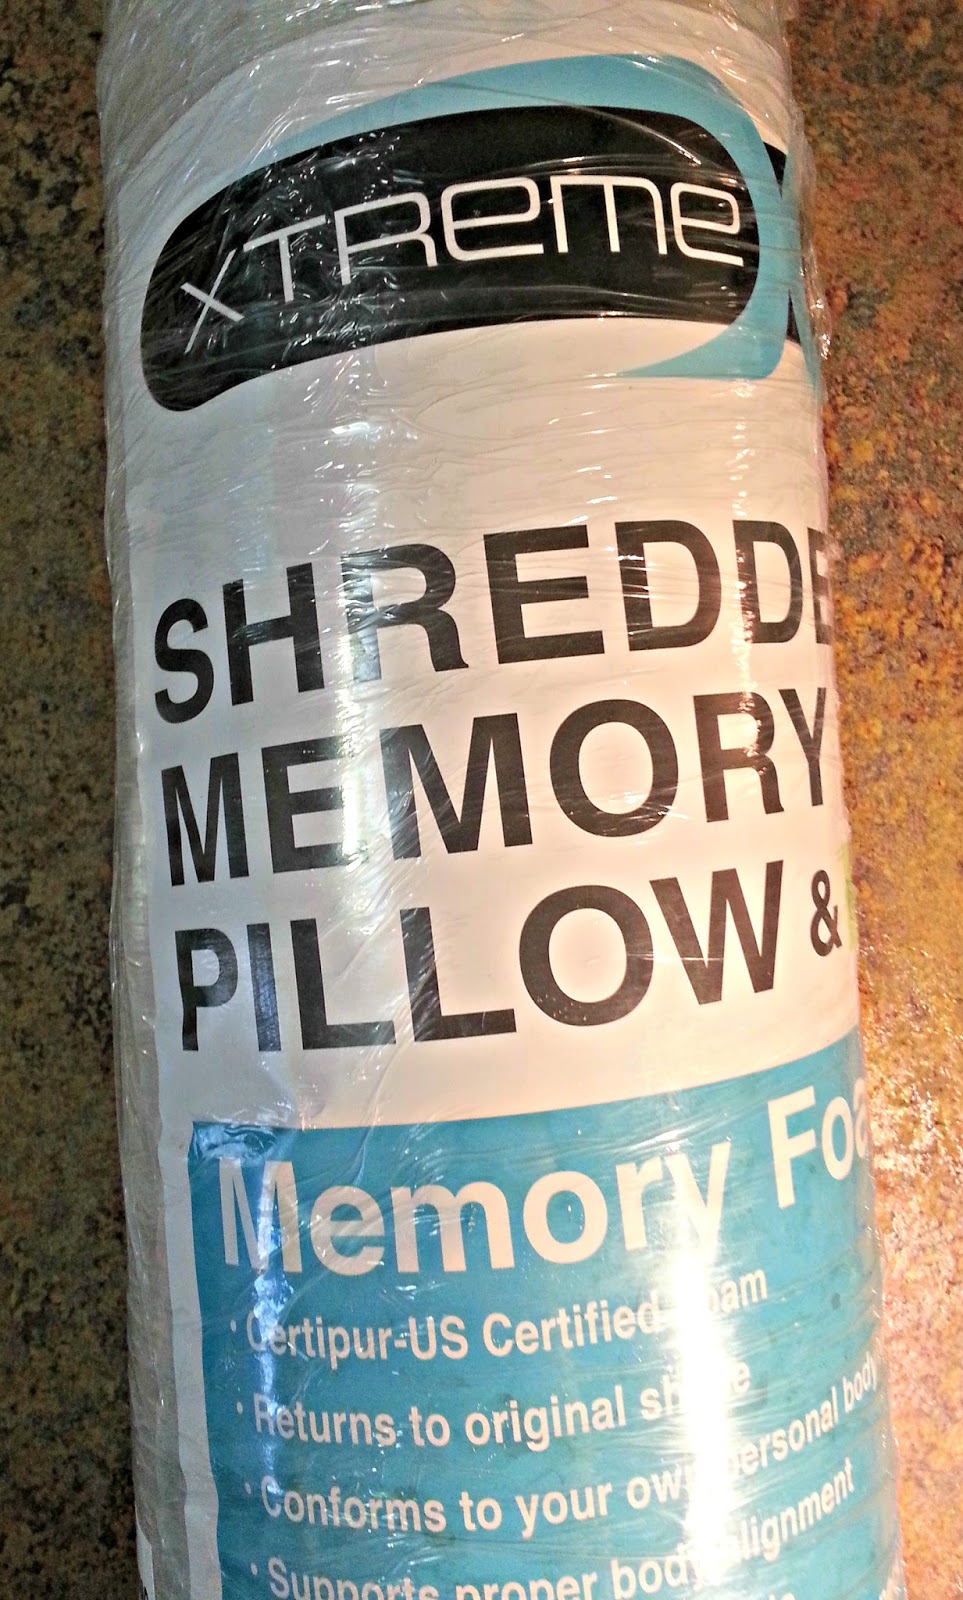 if you have never used a pillow like this before they are pretty neat they arrived flat rolled up and shrink wrapped after you unpackage them